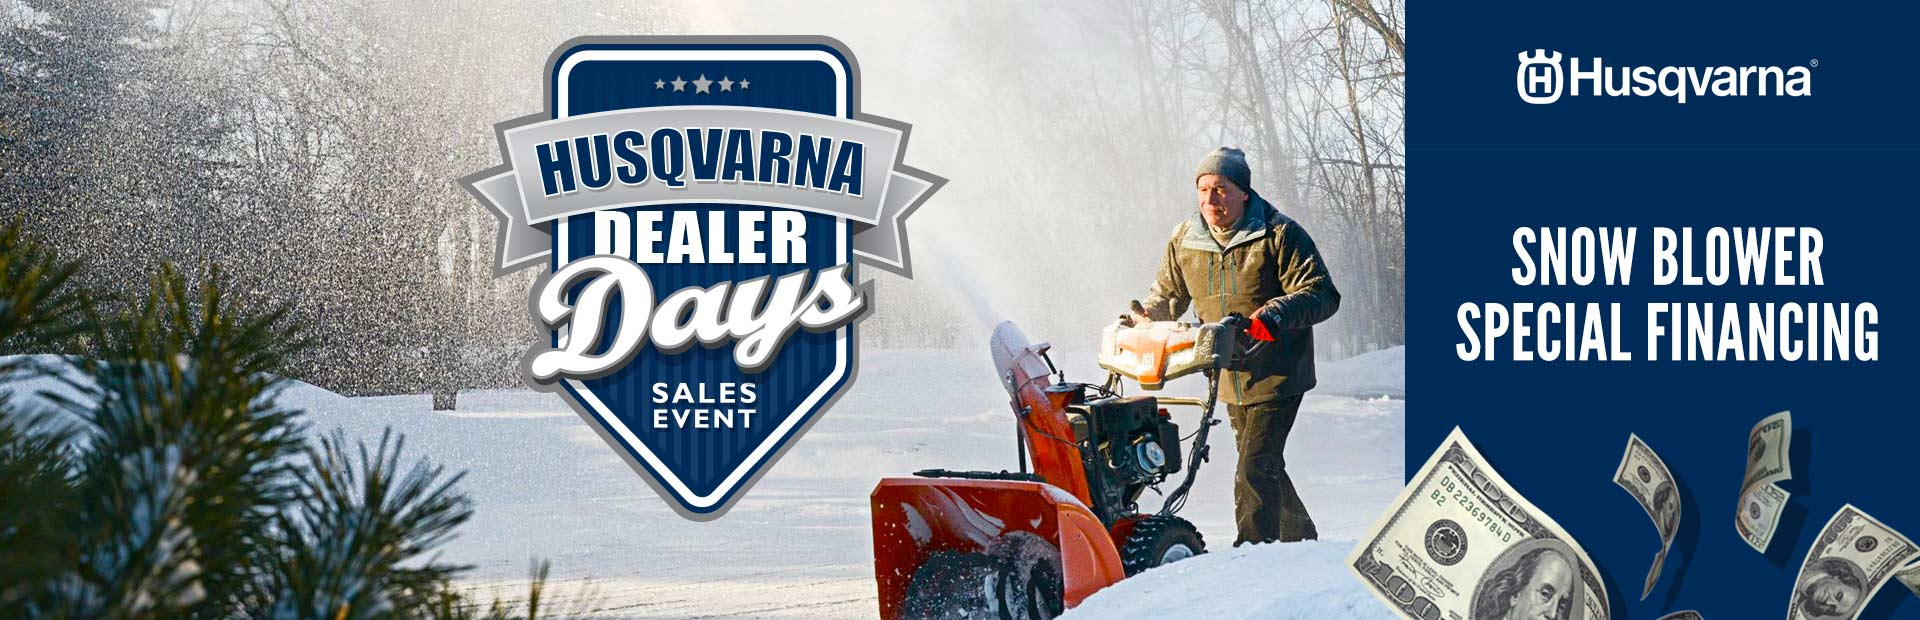 Husqvarna: Snow Blower Special Financing